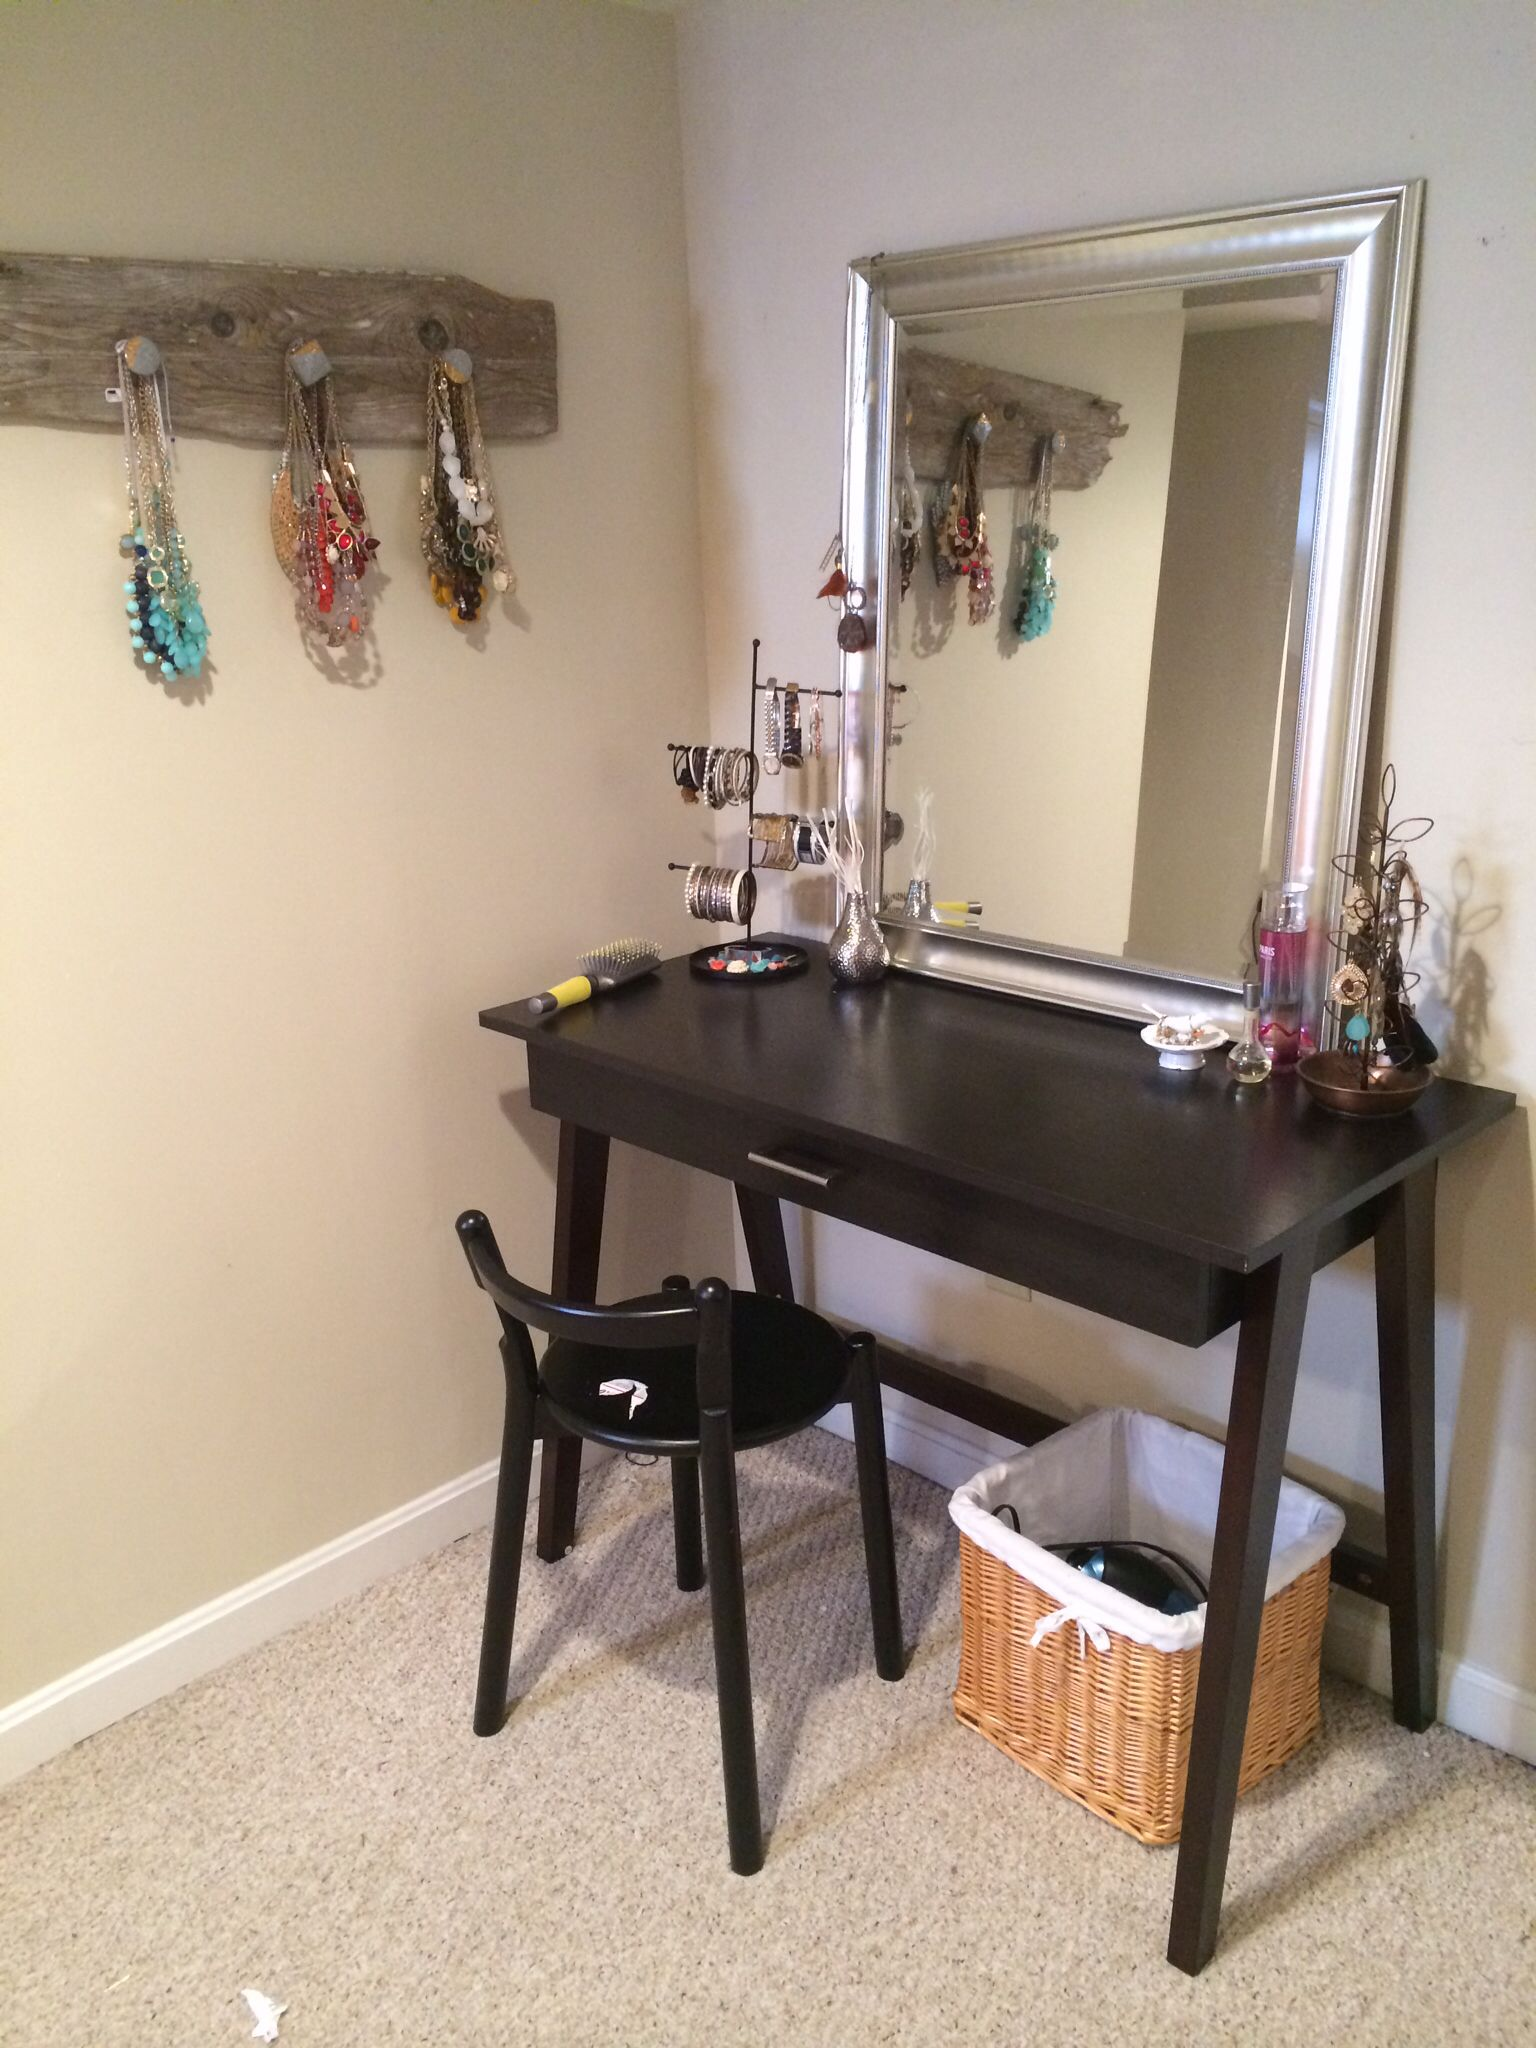 Diy dressing table vanity using a desk and mirror from target diy dressing table vanity using a desk and mirror from target geotapseo Choice Image